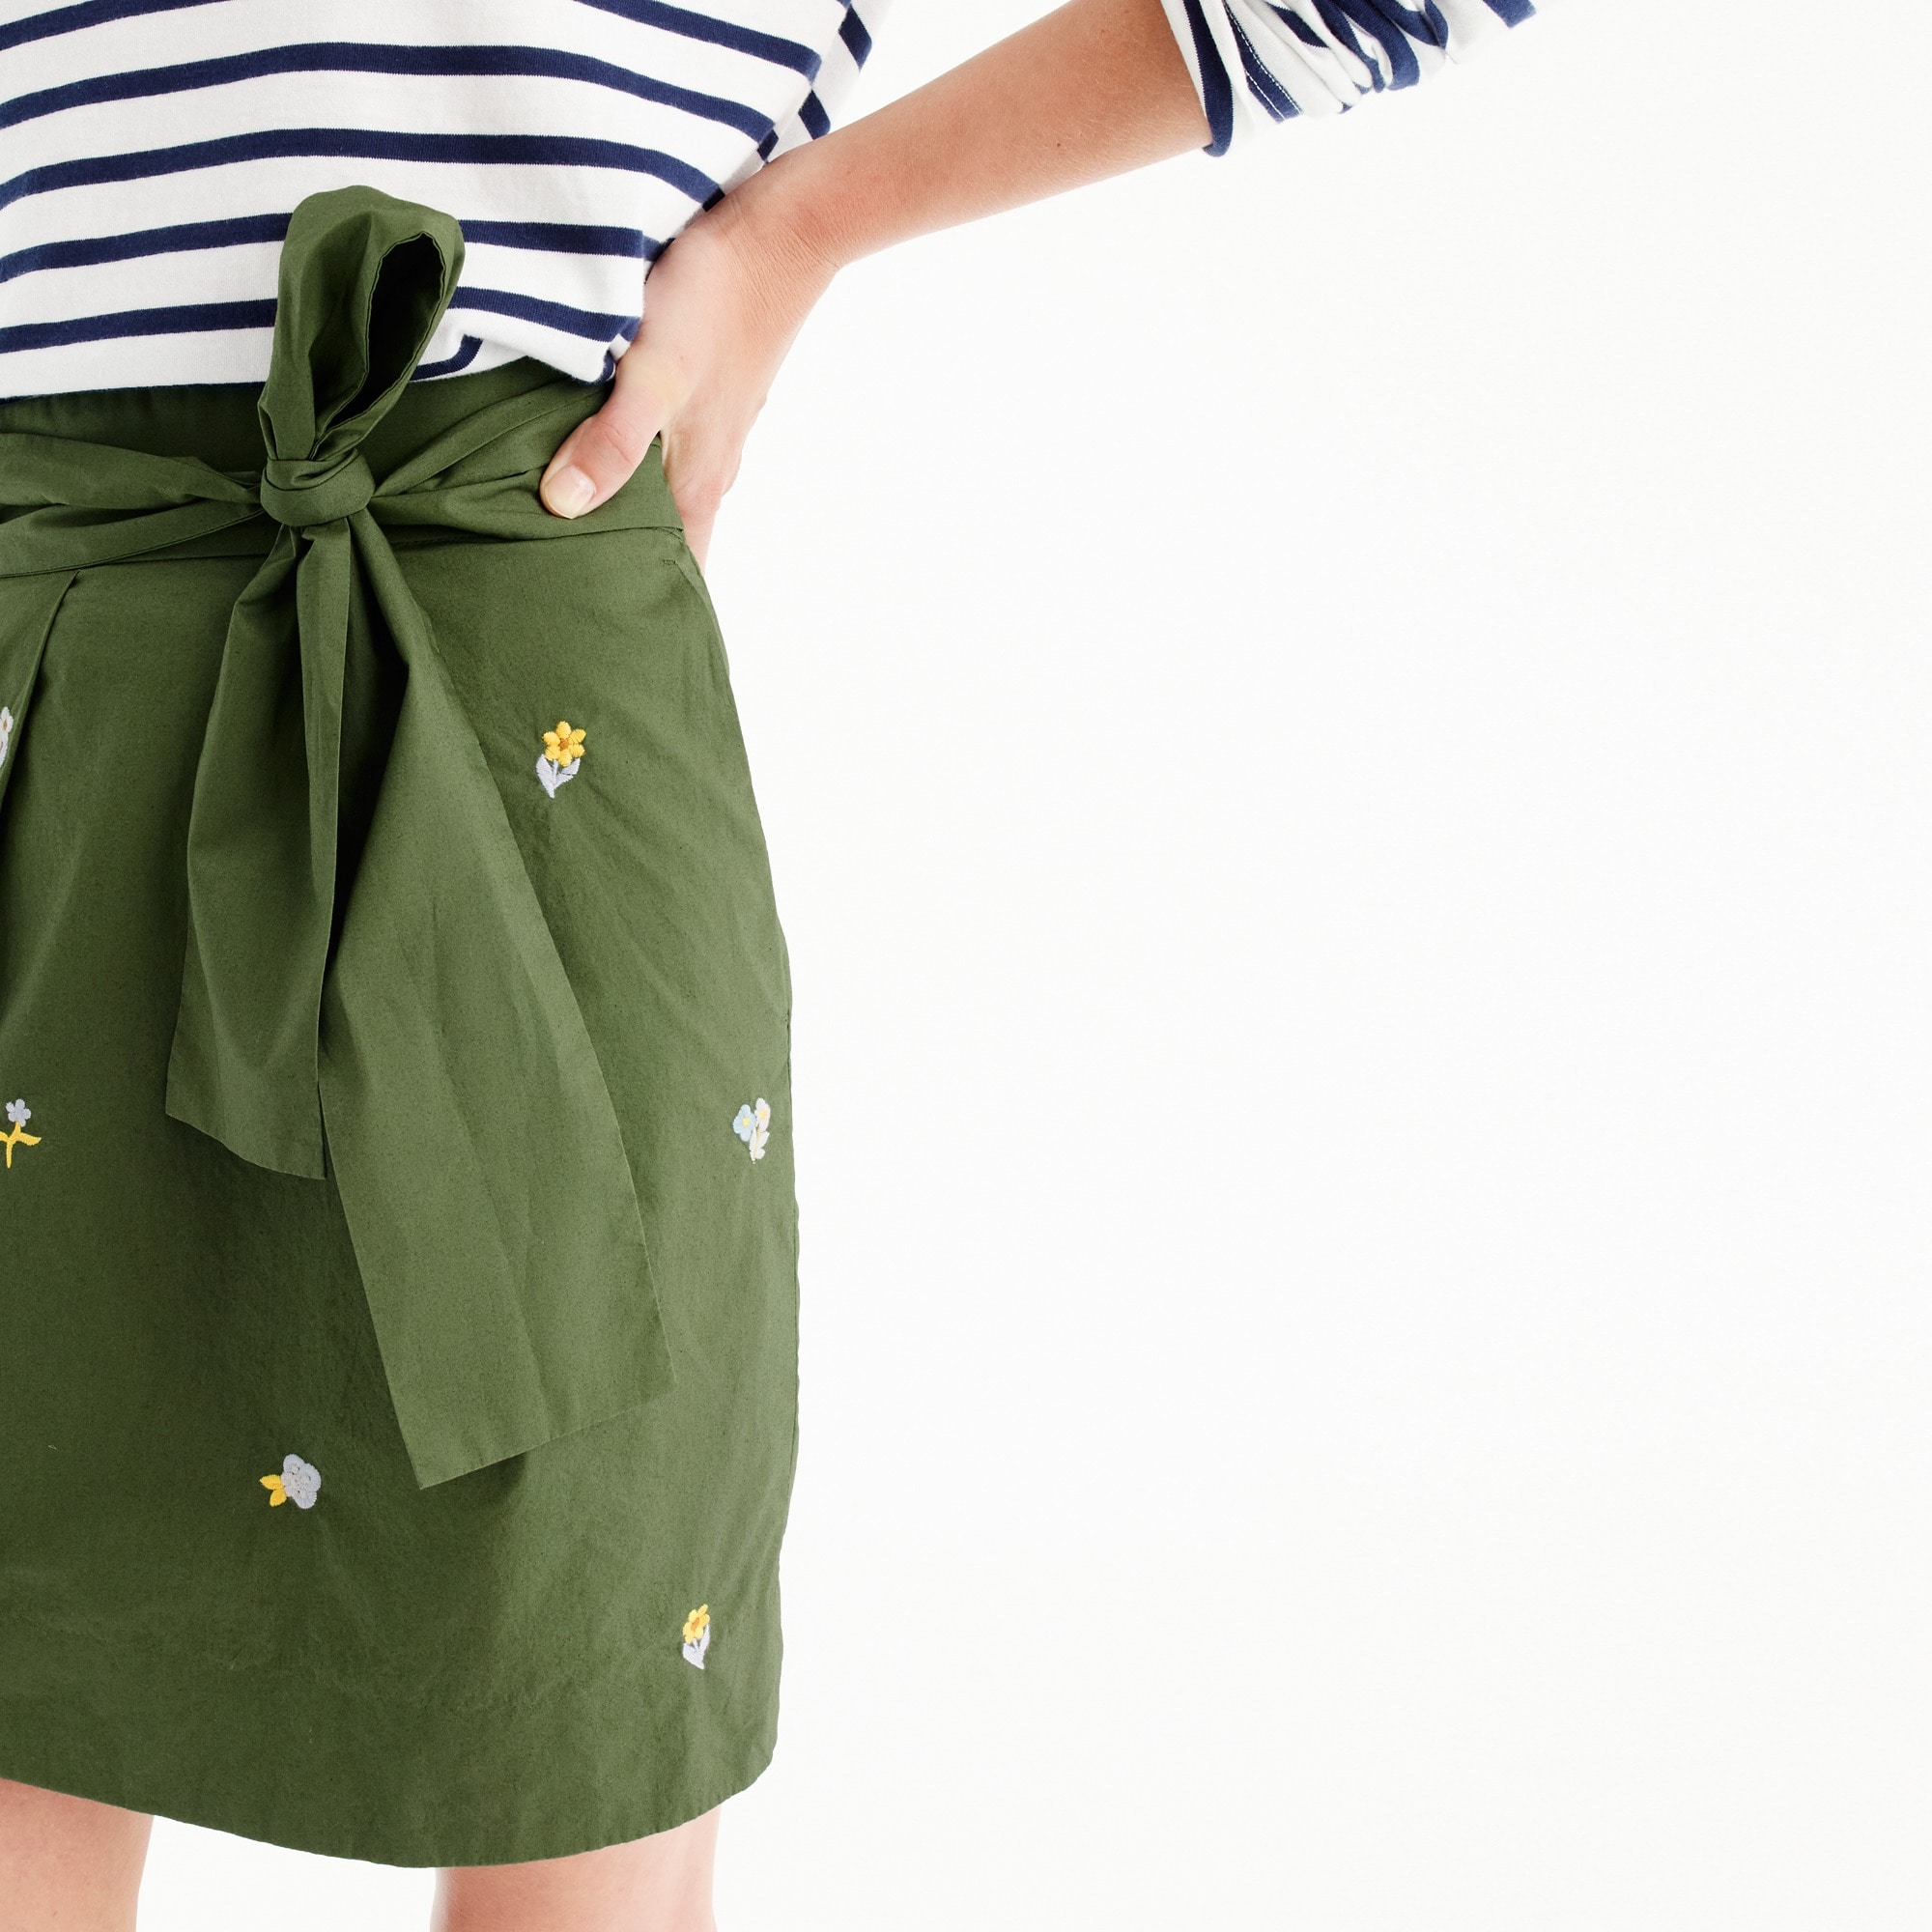 Image 2 for Petite floral embroidered tie-waist skirt